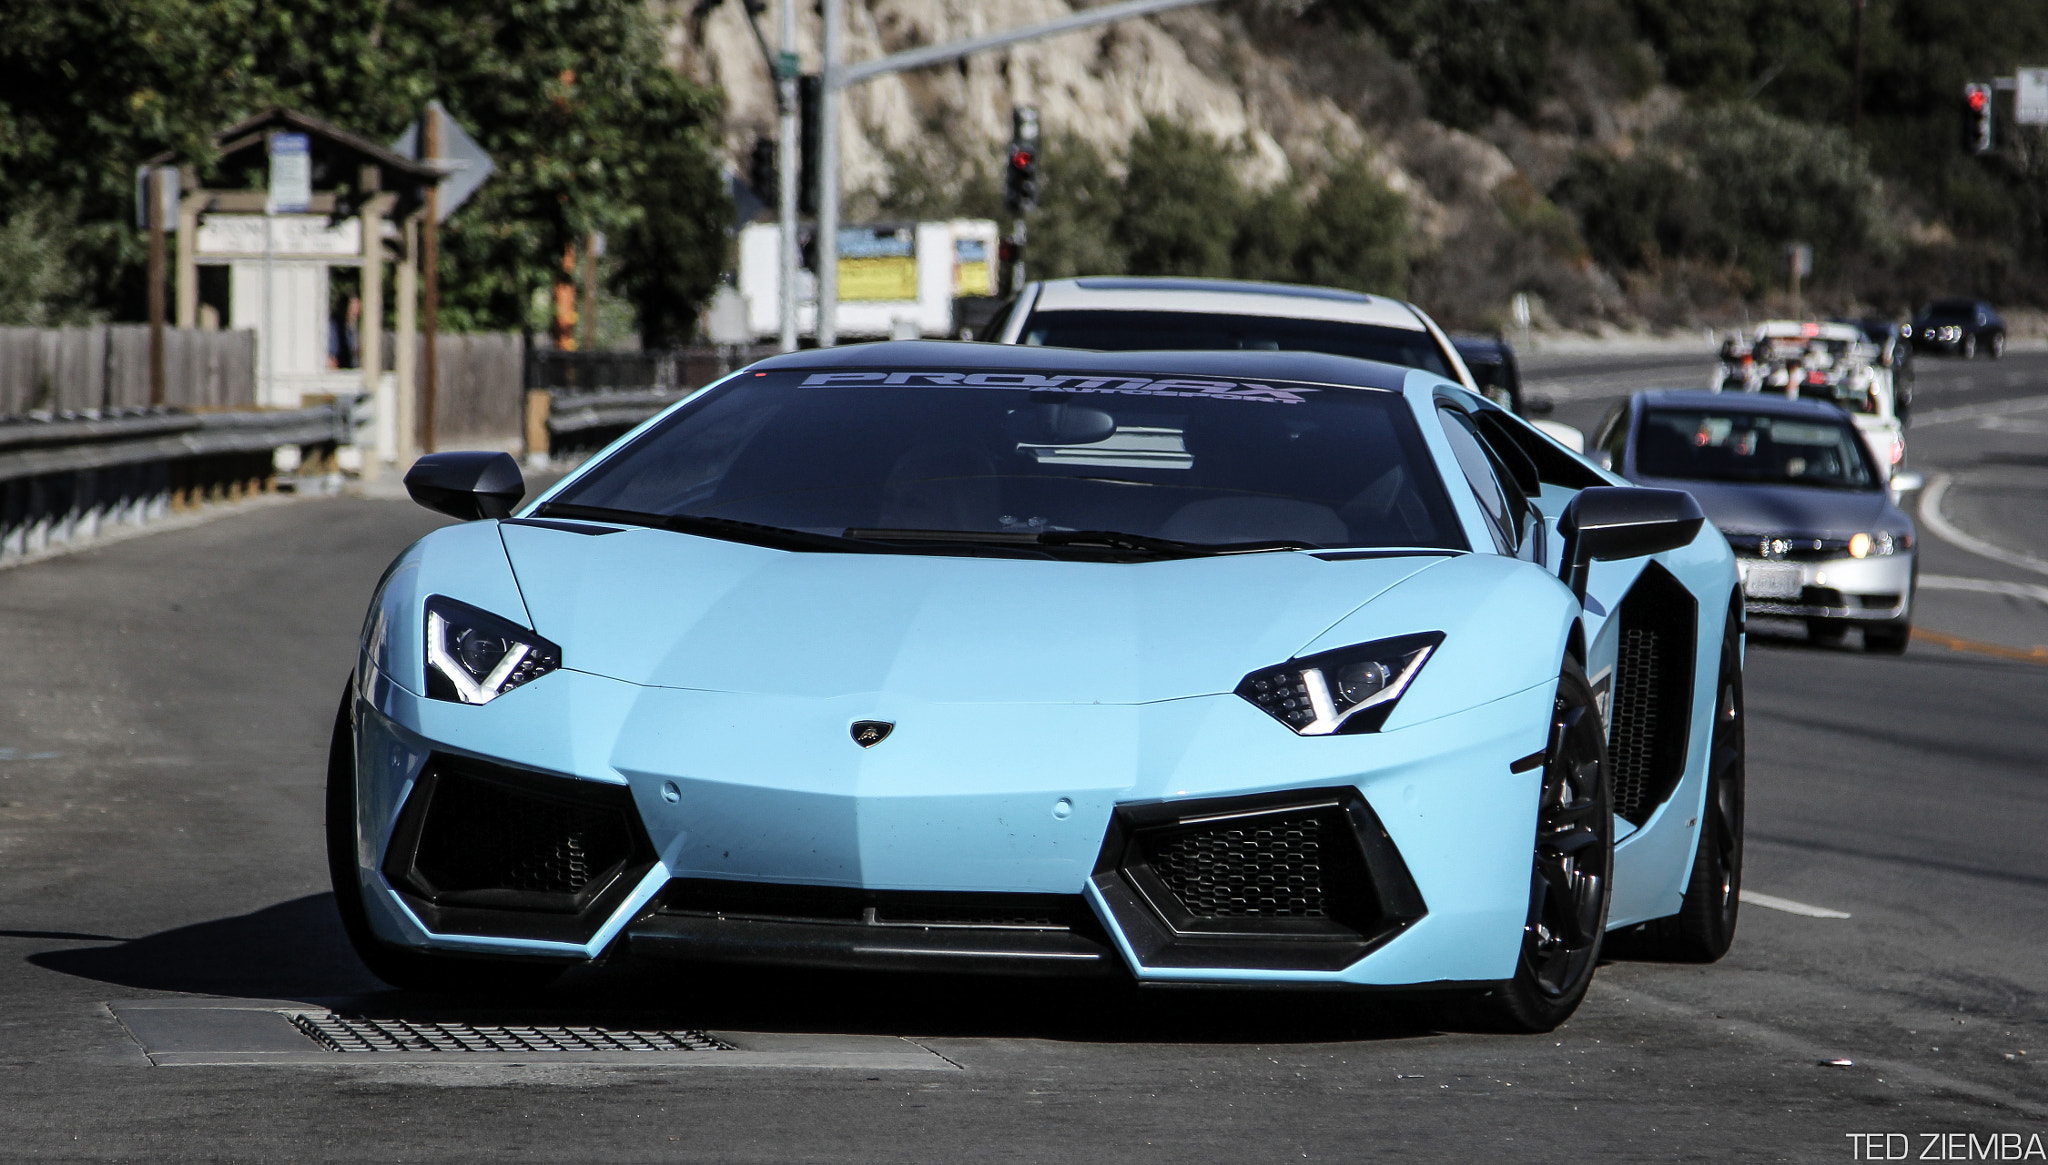 Photograph Aventador by Ted Ziemba on 500px